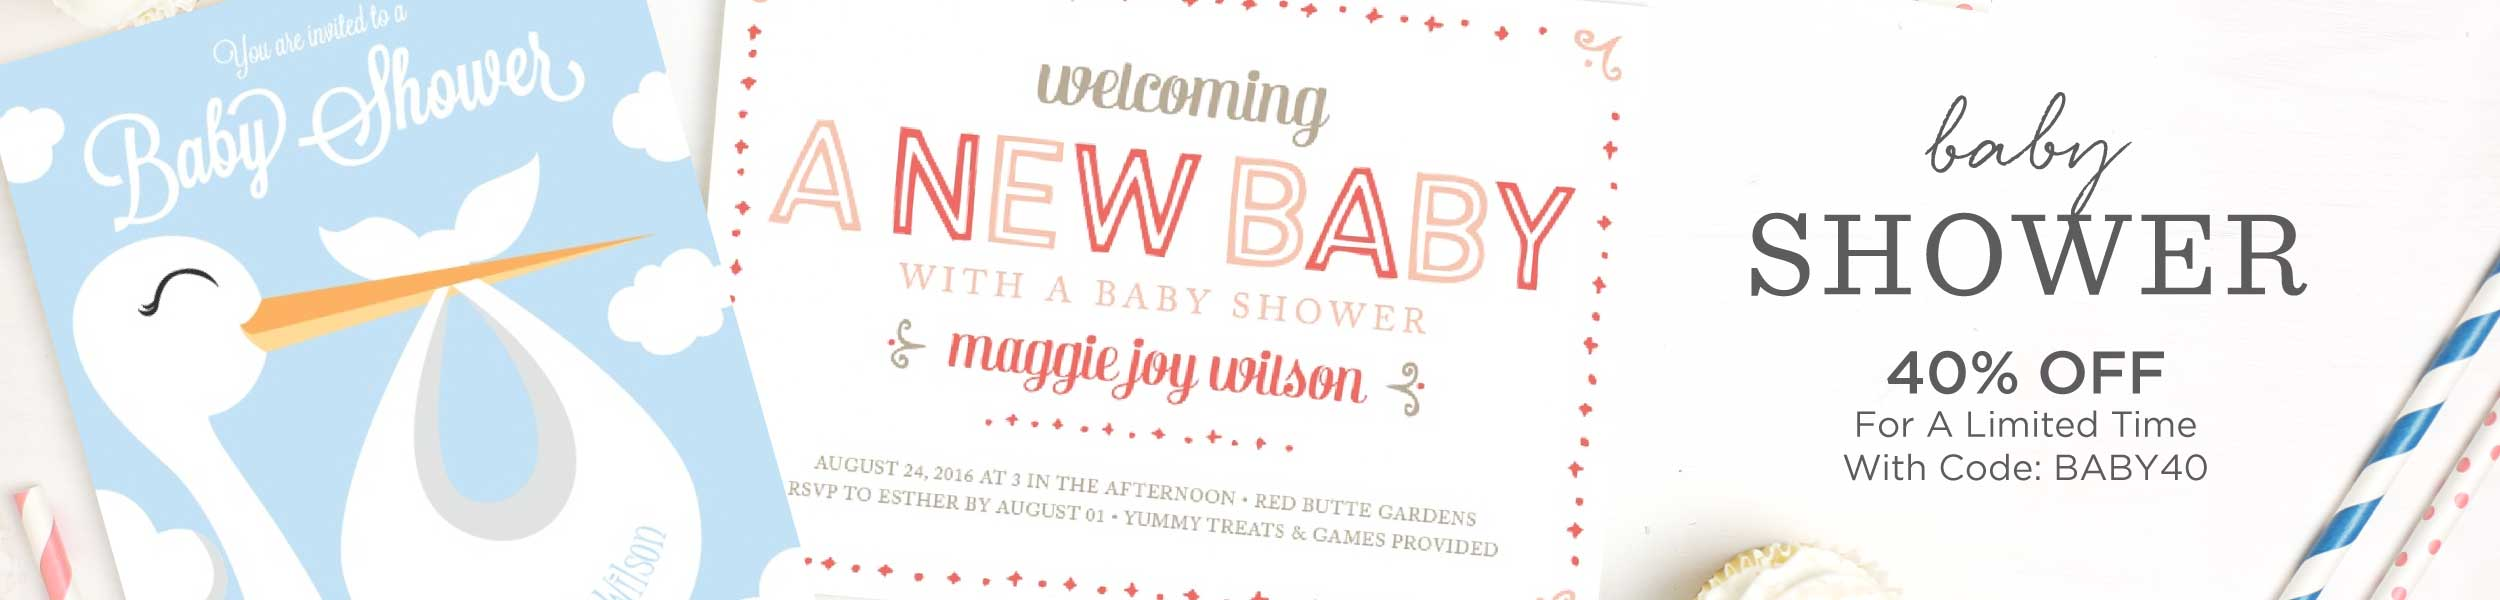 Full Size of Baby Shower:baby Boy Shower Ideas Free Printable Baby Shower Games Free Baby Shower Ideas Unique Baby Shower Decorations Baby Shower Card Message Ideas Zazzle Invitations Baby Girl Themes For Baby Shower Oriental Trading Baby Shower